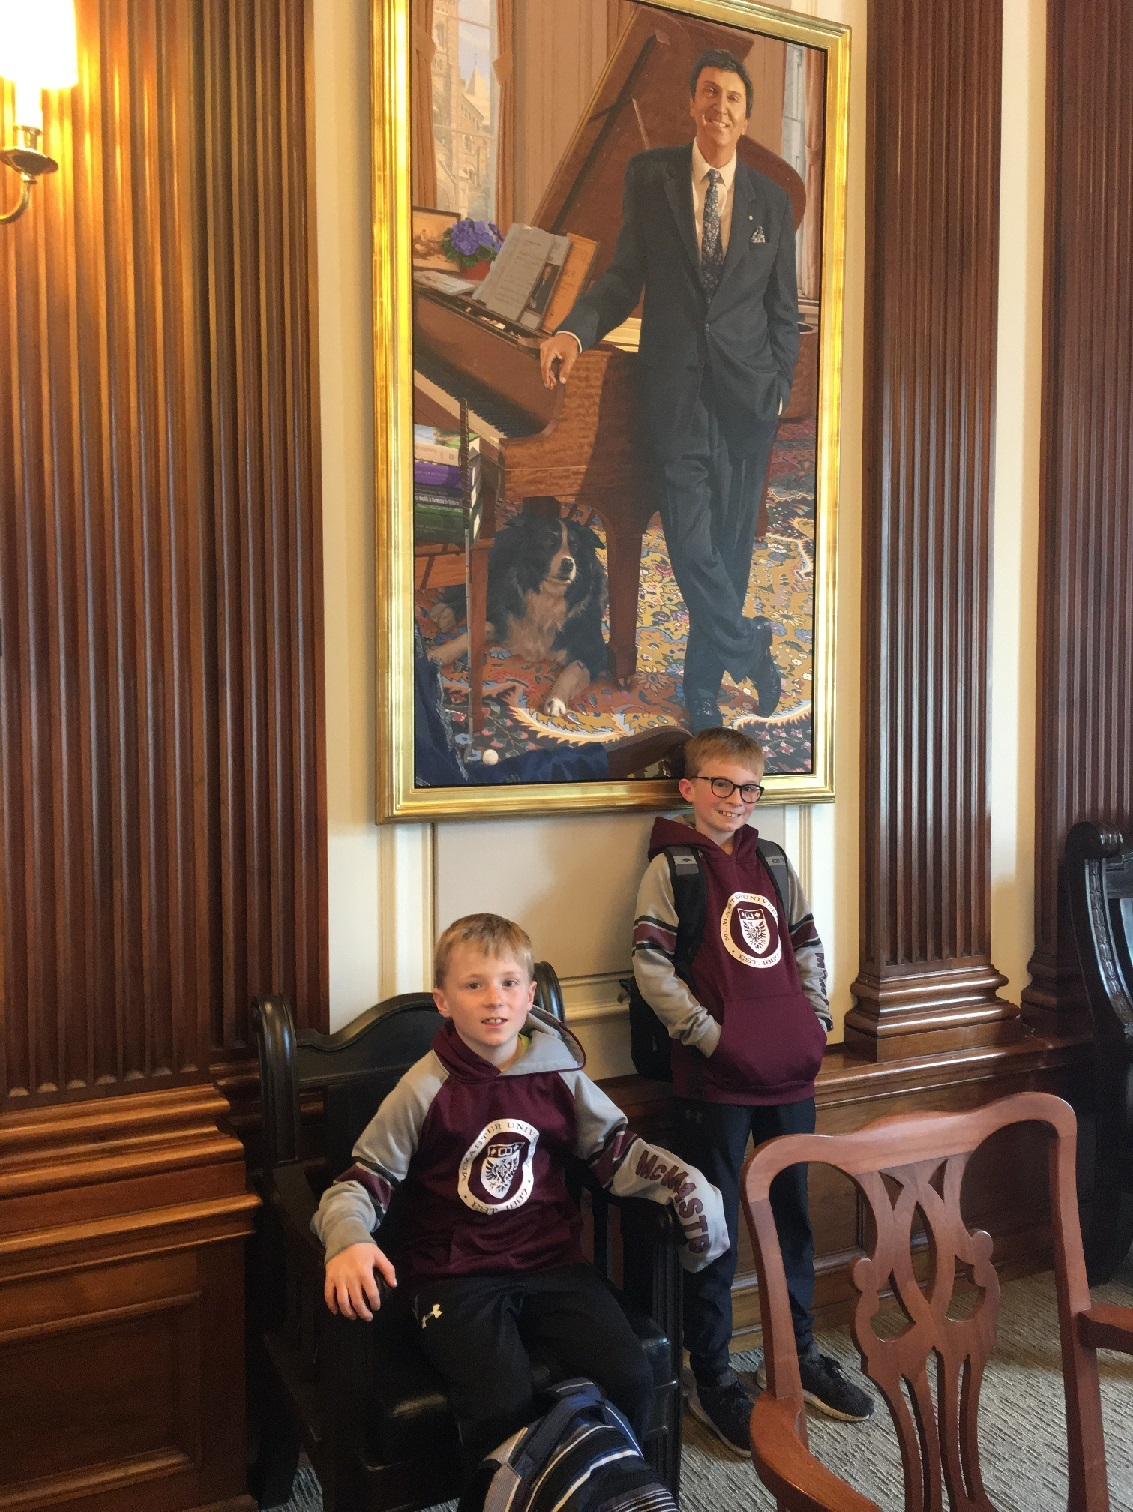 Conor and Owen pose in Governing Council Chambers in front of C. David Naylor and Oscar T. Naylor.